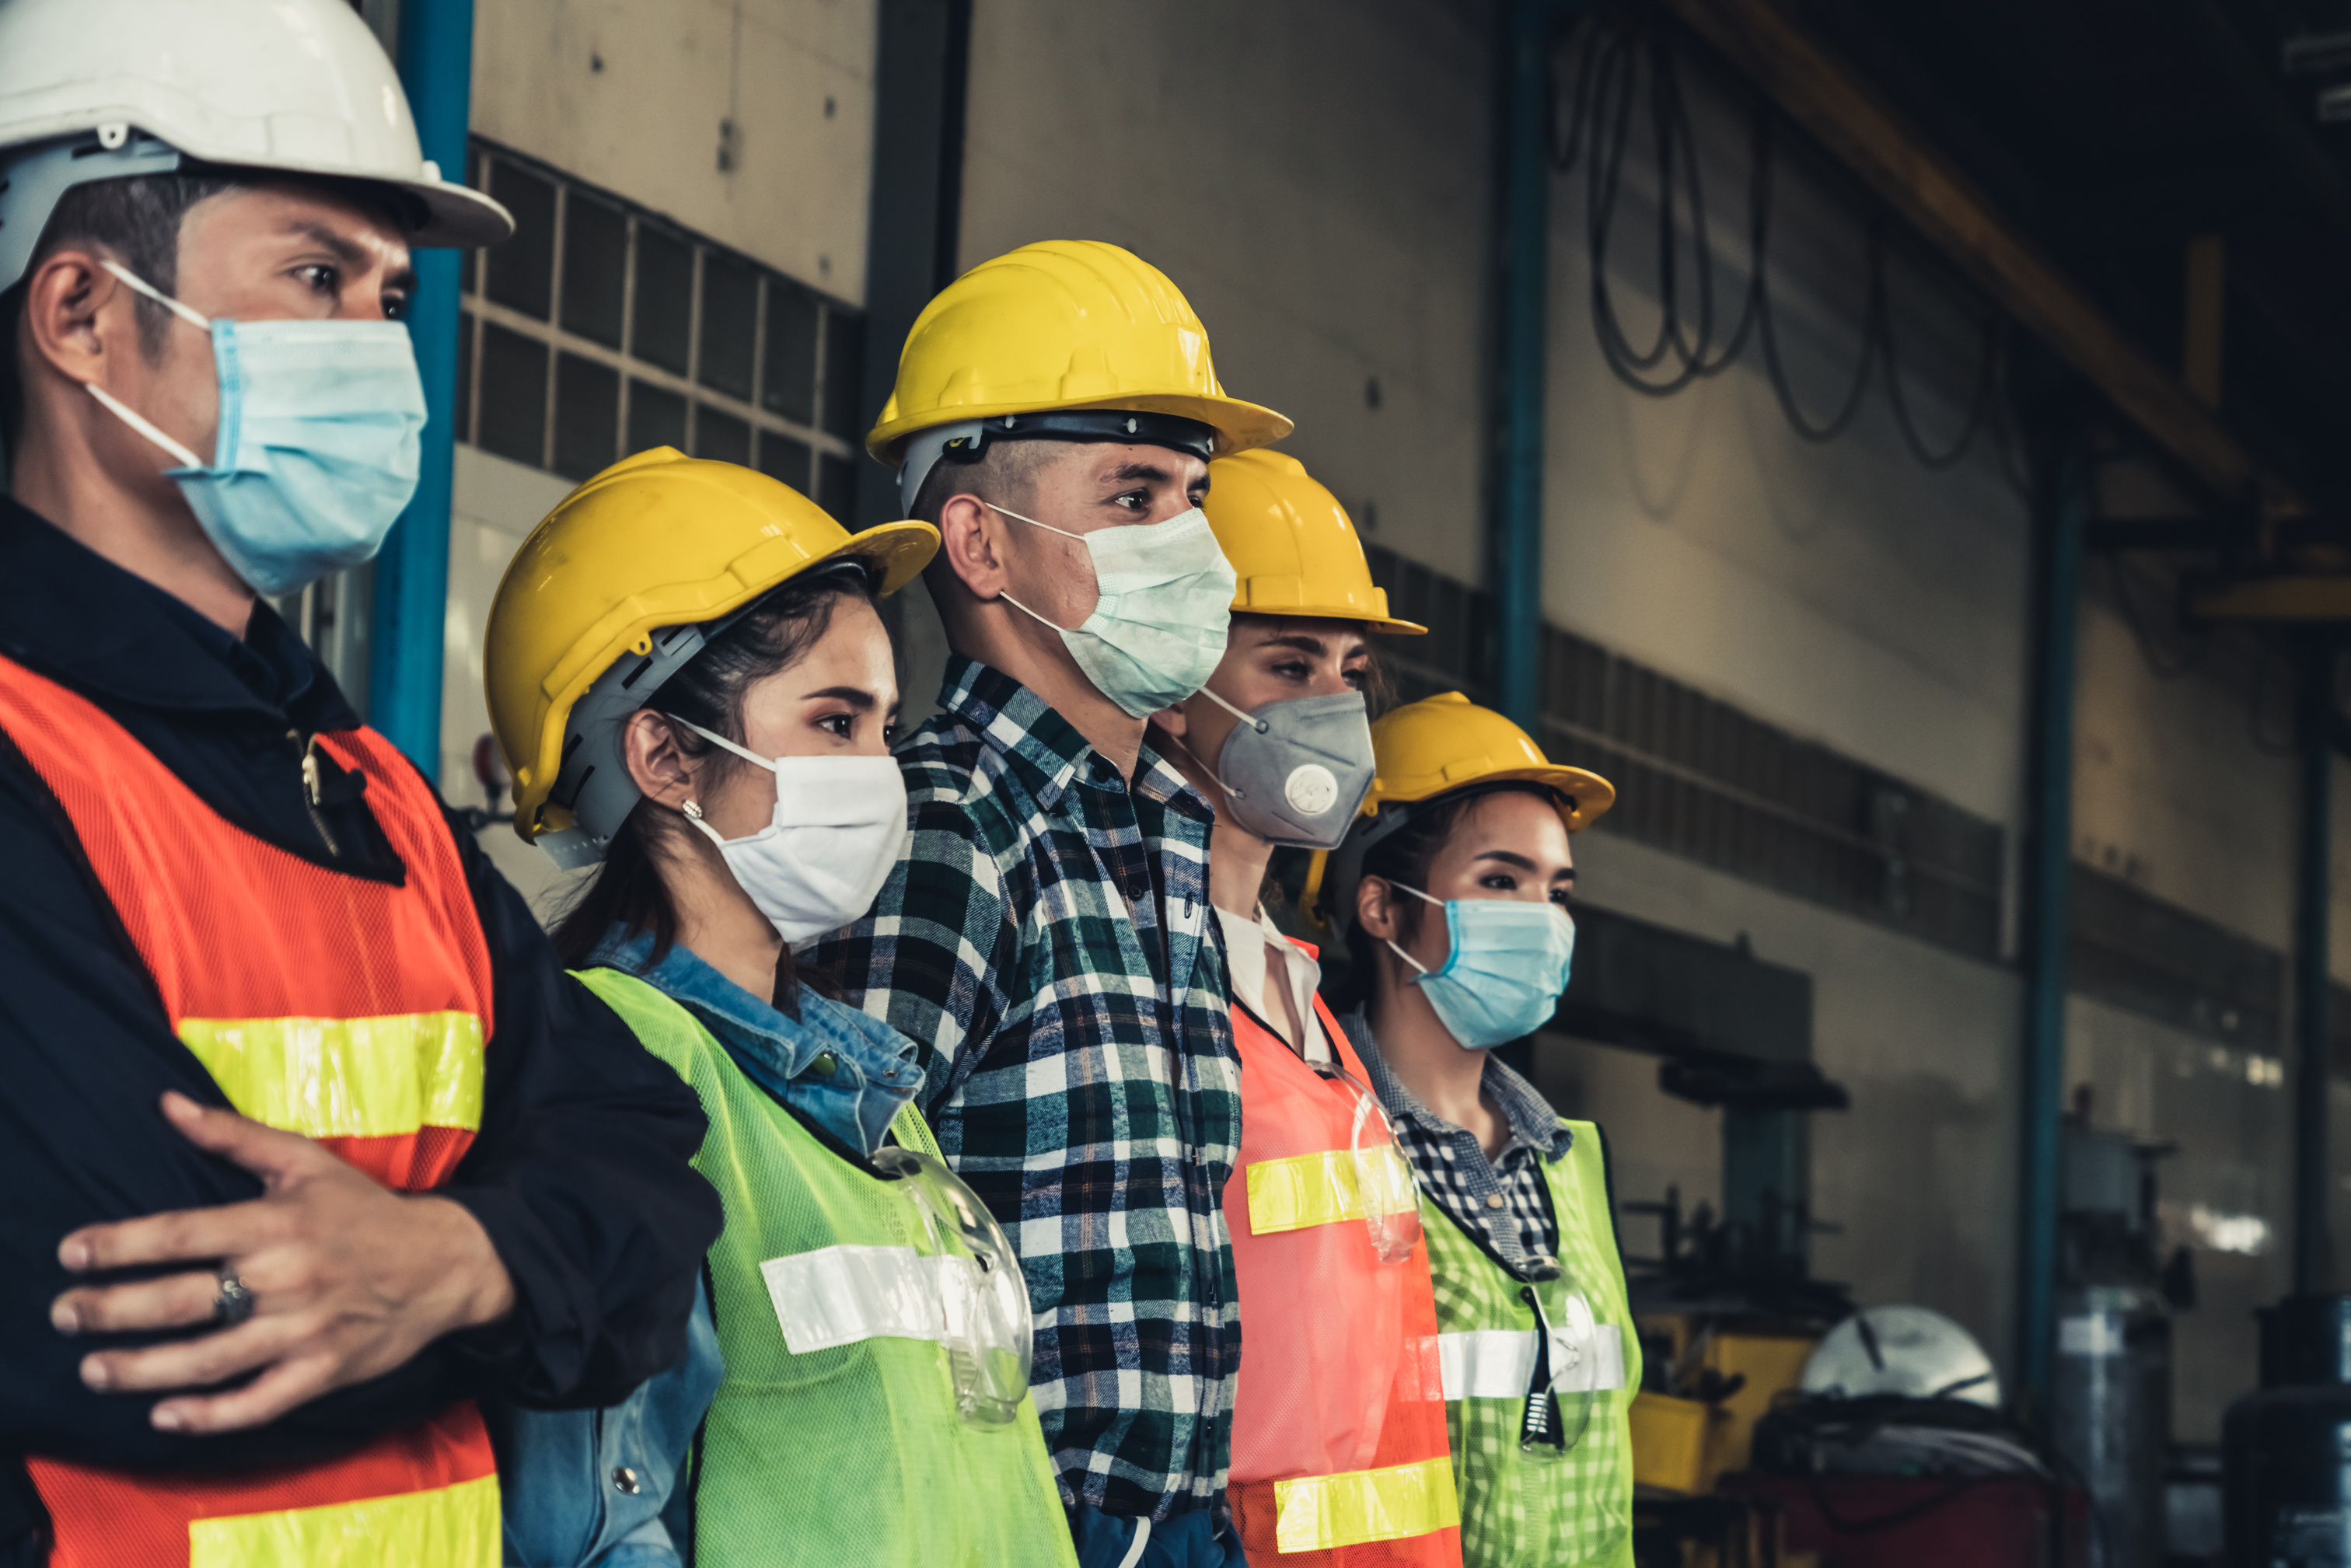 COVID-19 forces construction site safety innovation now and for the future. More stringent risk assessment procedures are keeping workers healthy.